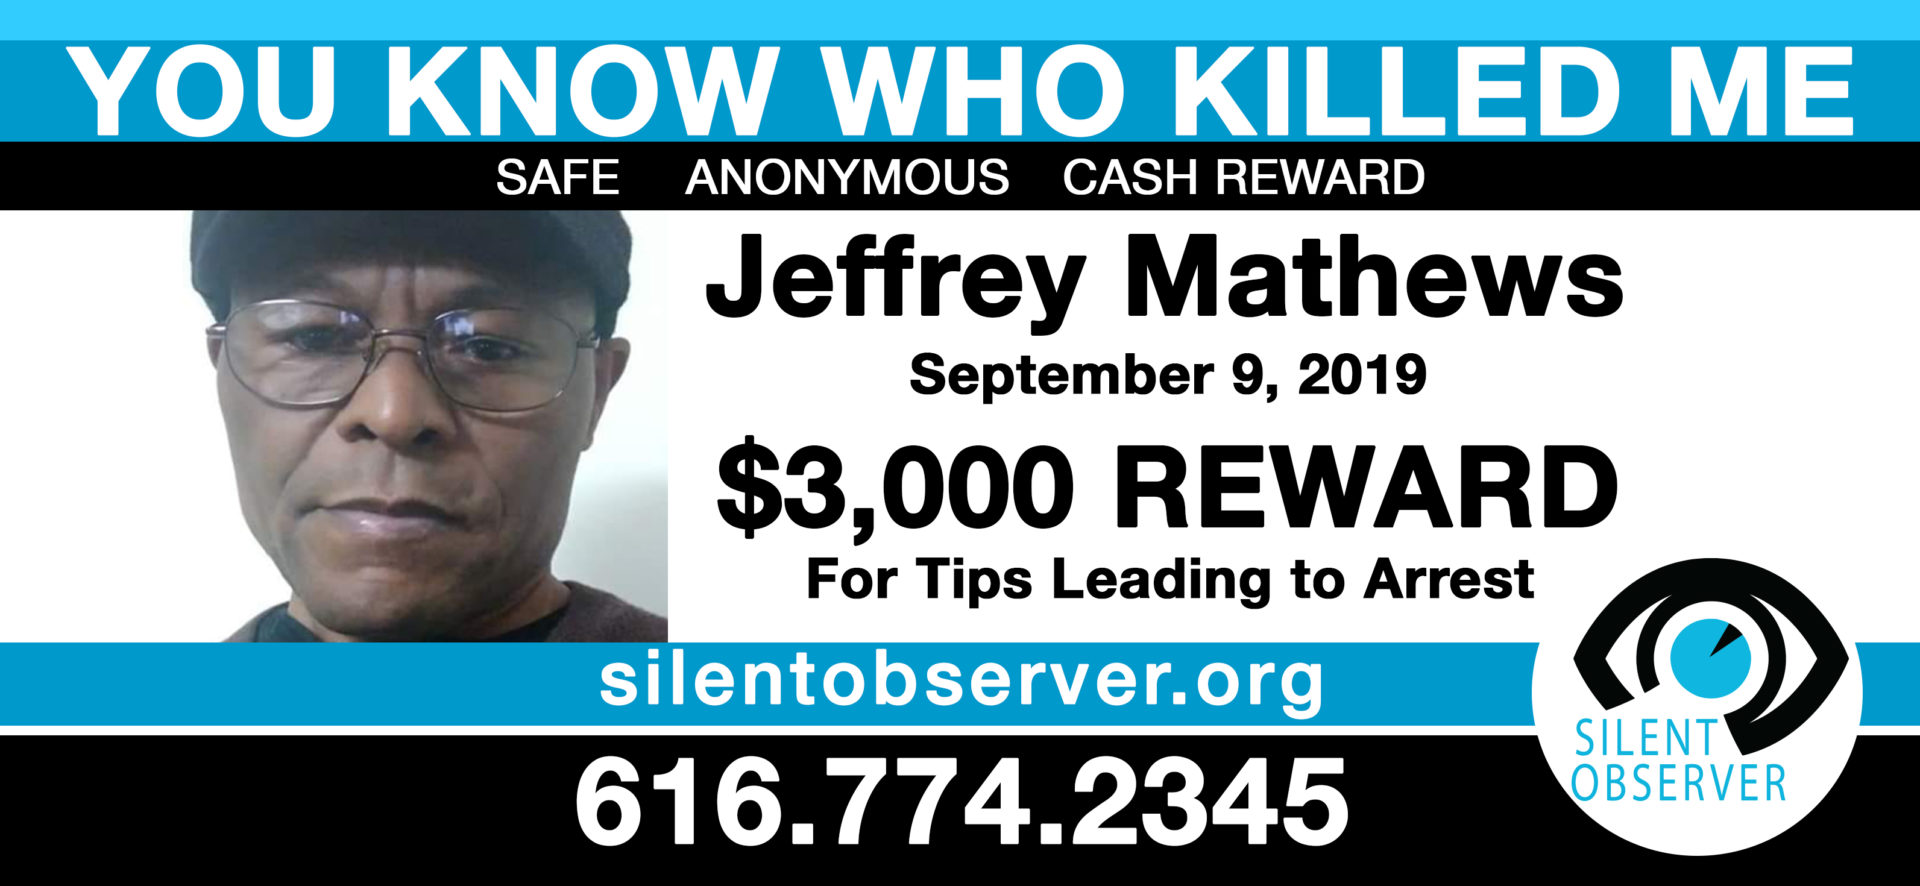 You Know Who Killed Me Jeffrey Mathews Press Release